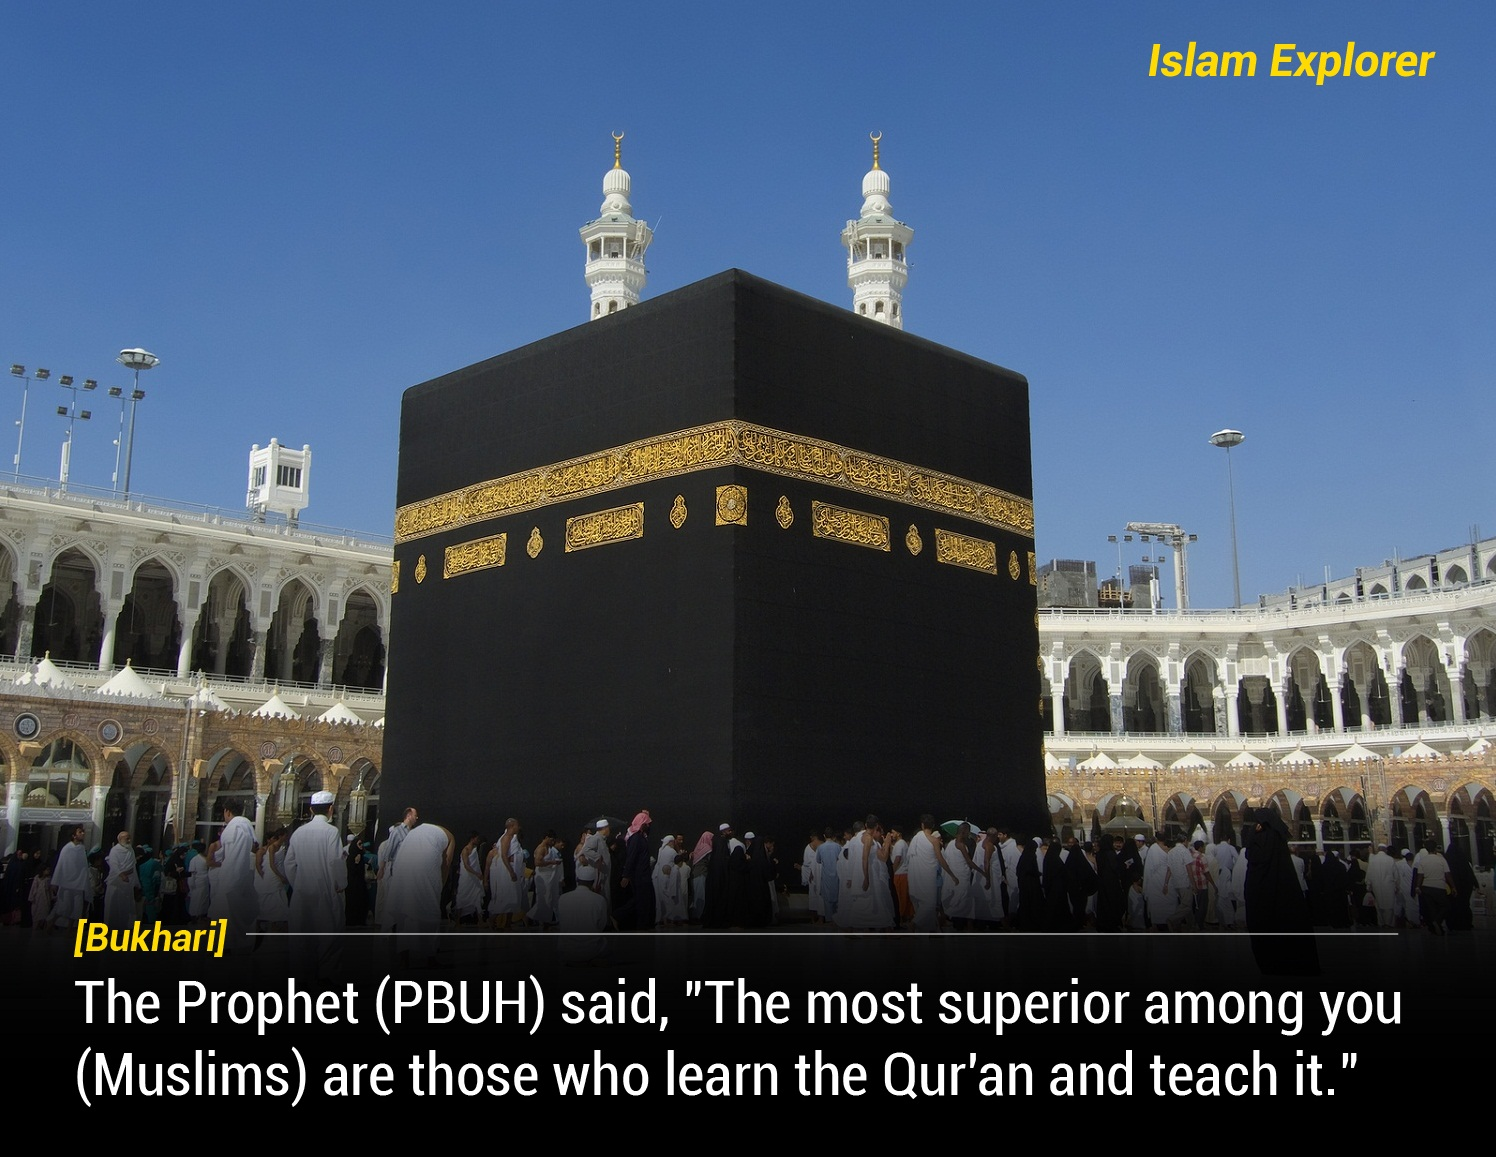 The most superior among you (Muslim) are those who learn the Qur'an